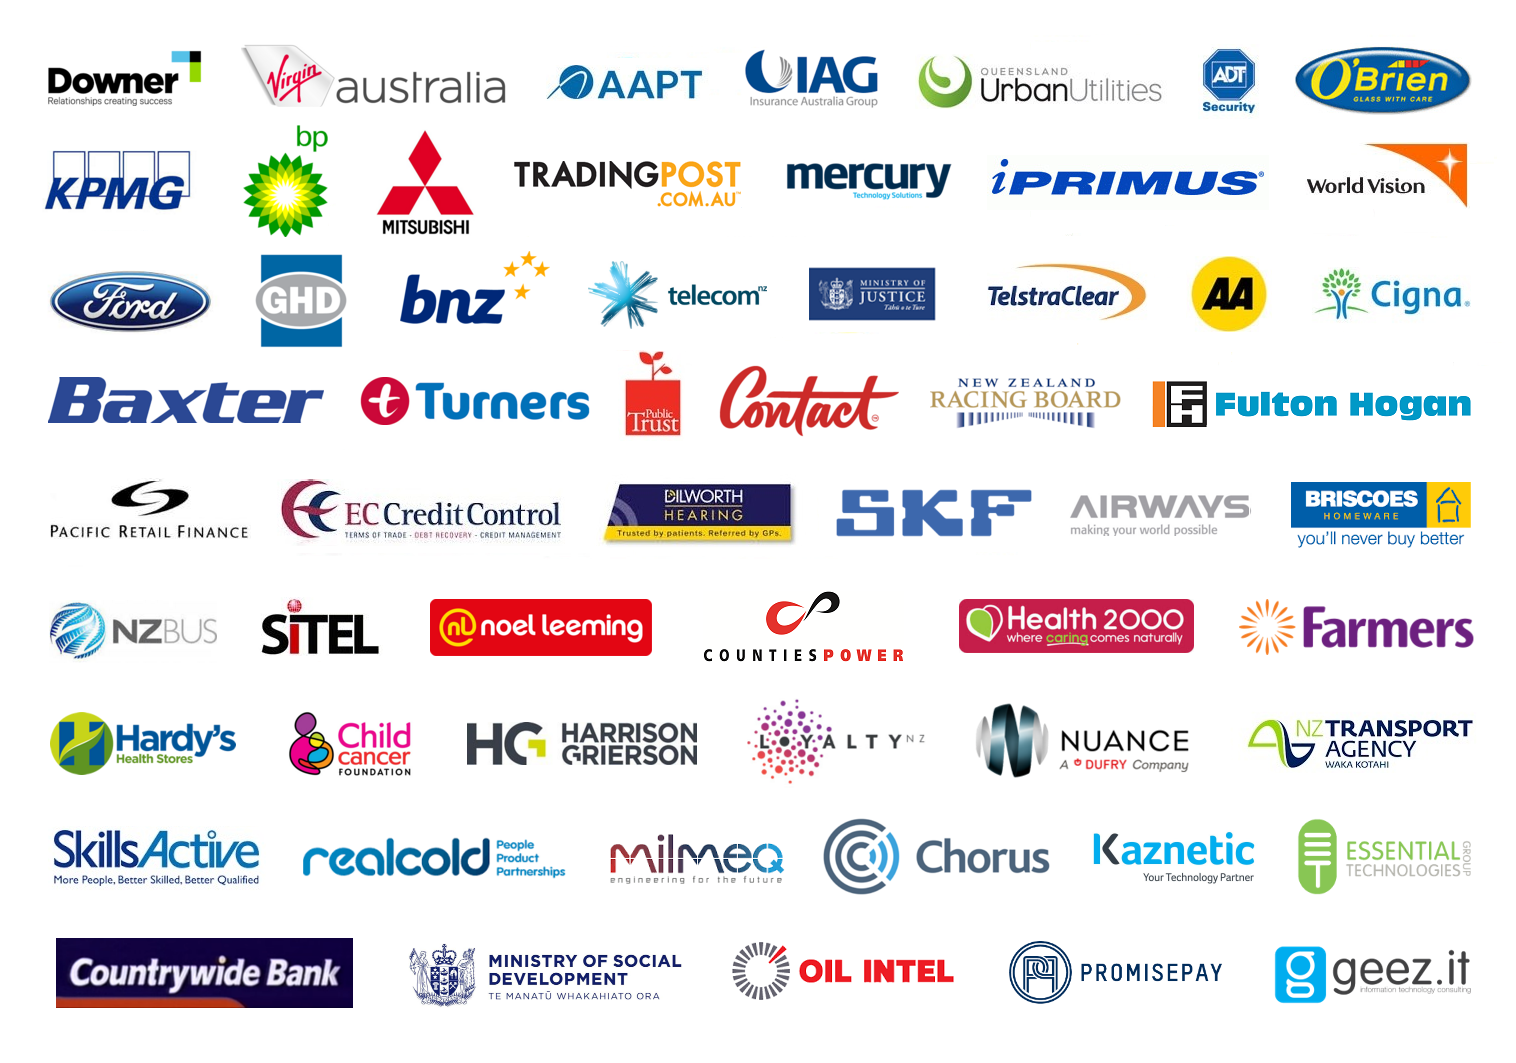 We have helped to grow performance in the contact centres and retail networks of over 50 large organisations since 1997.